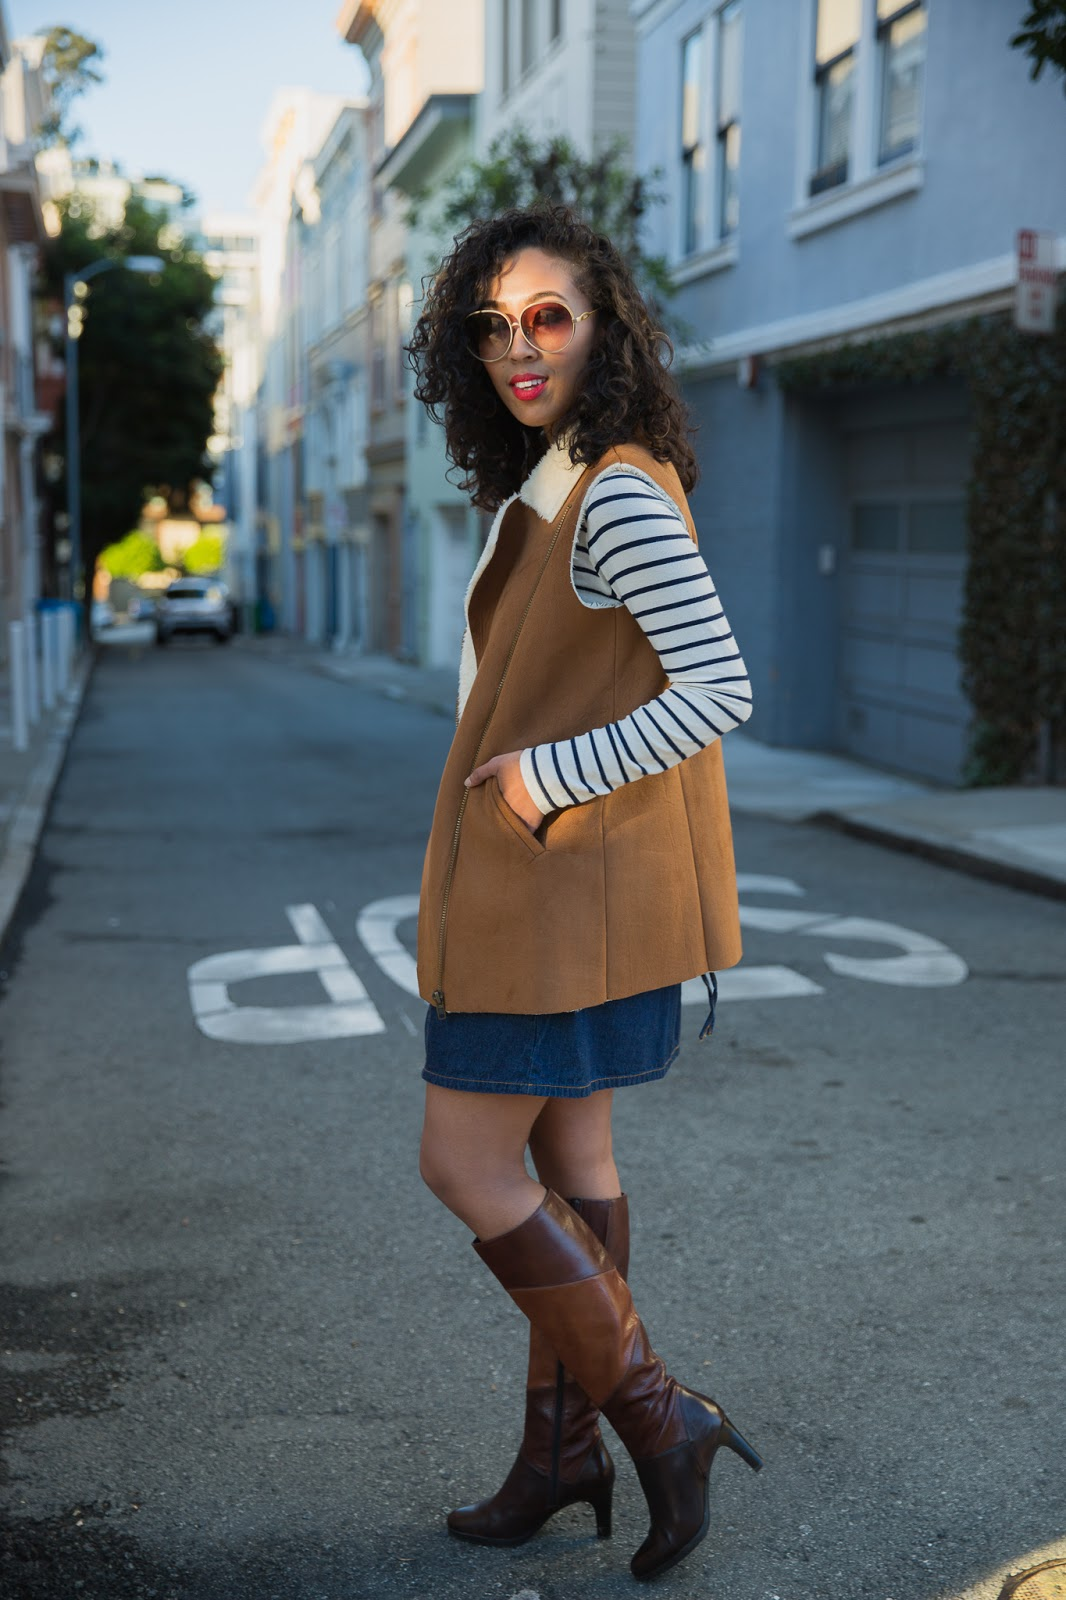 Pancake Stacker wearing Amour Vert Stripe Top, Tobi Denim Dress, Nautralizer Brown Boots and Wildfox Sunglasses